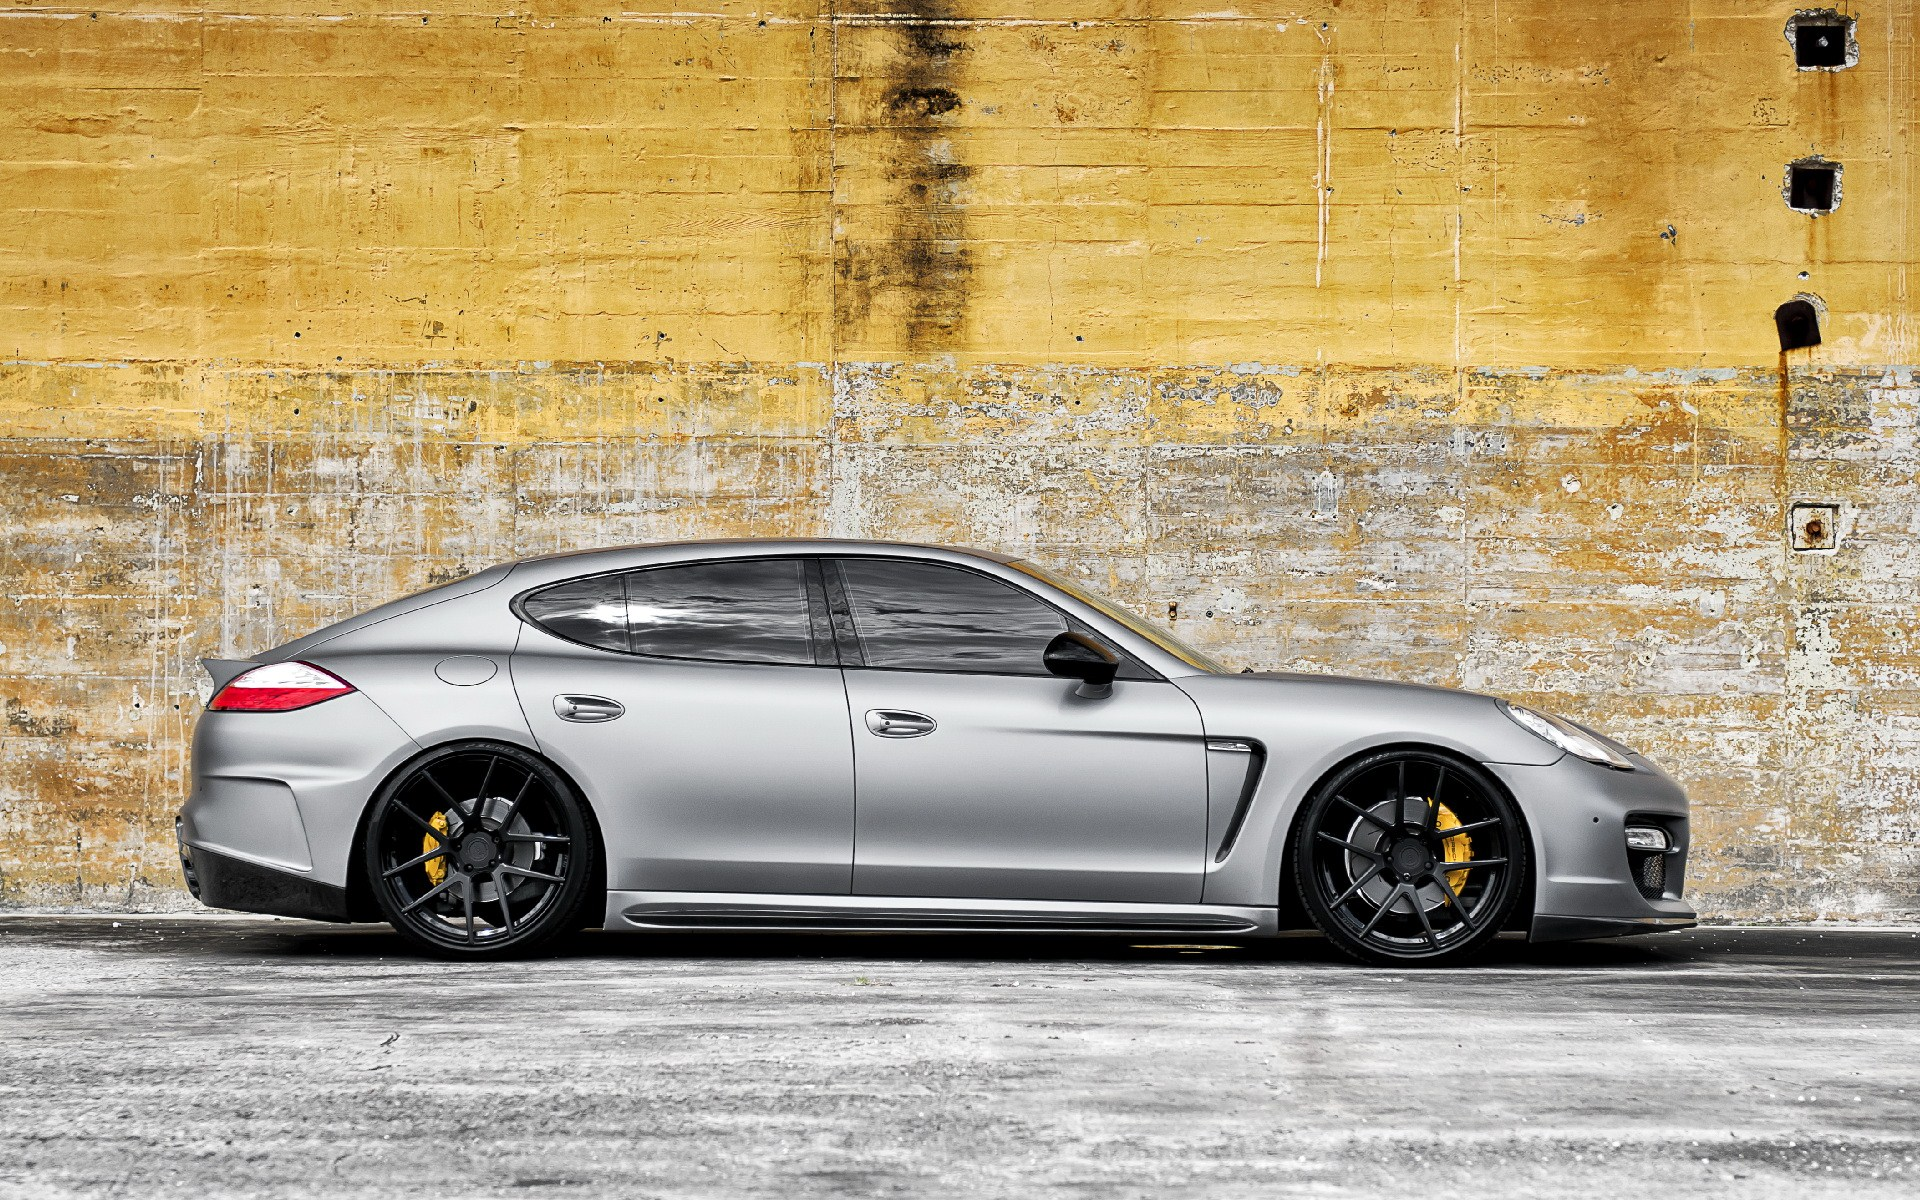 Matte Porsche Panamera Unique Adv.1 Wheels HD Wallpaper is a awesome hd photography. Free to upload, share the high definition photos.